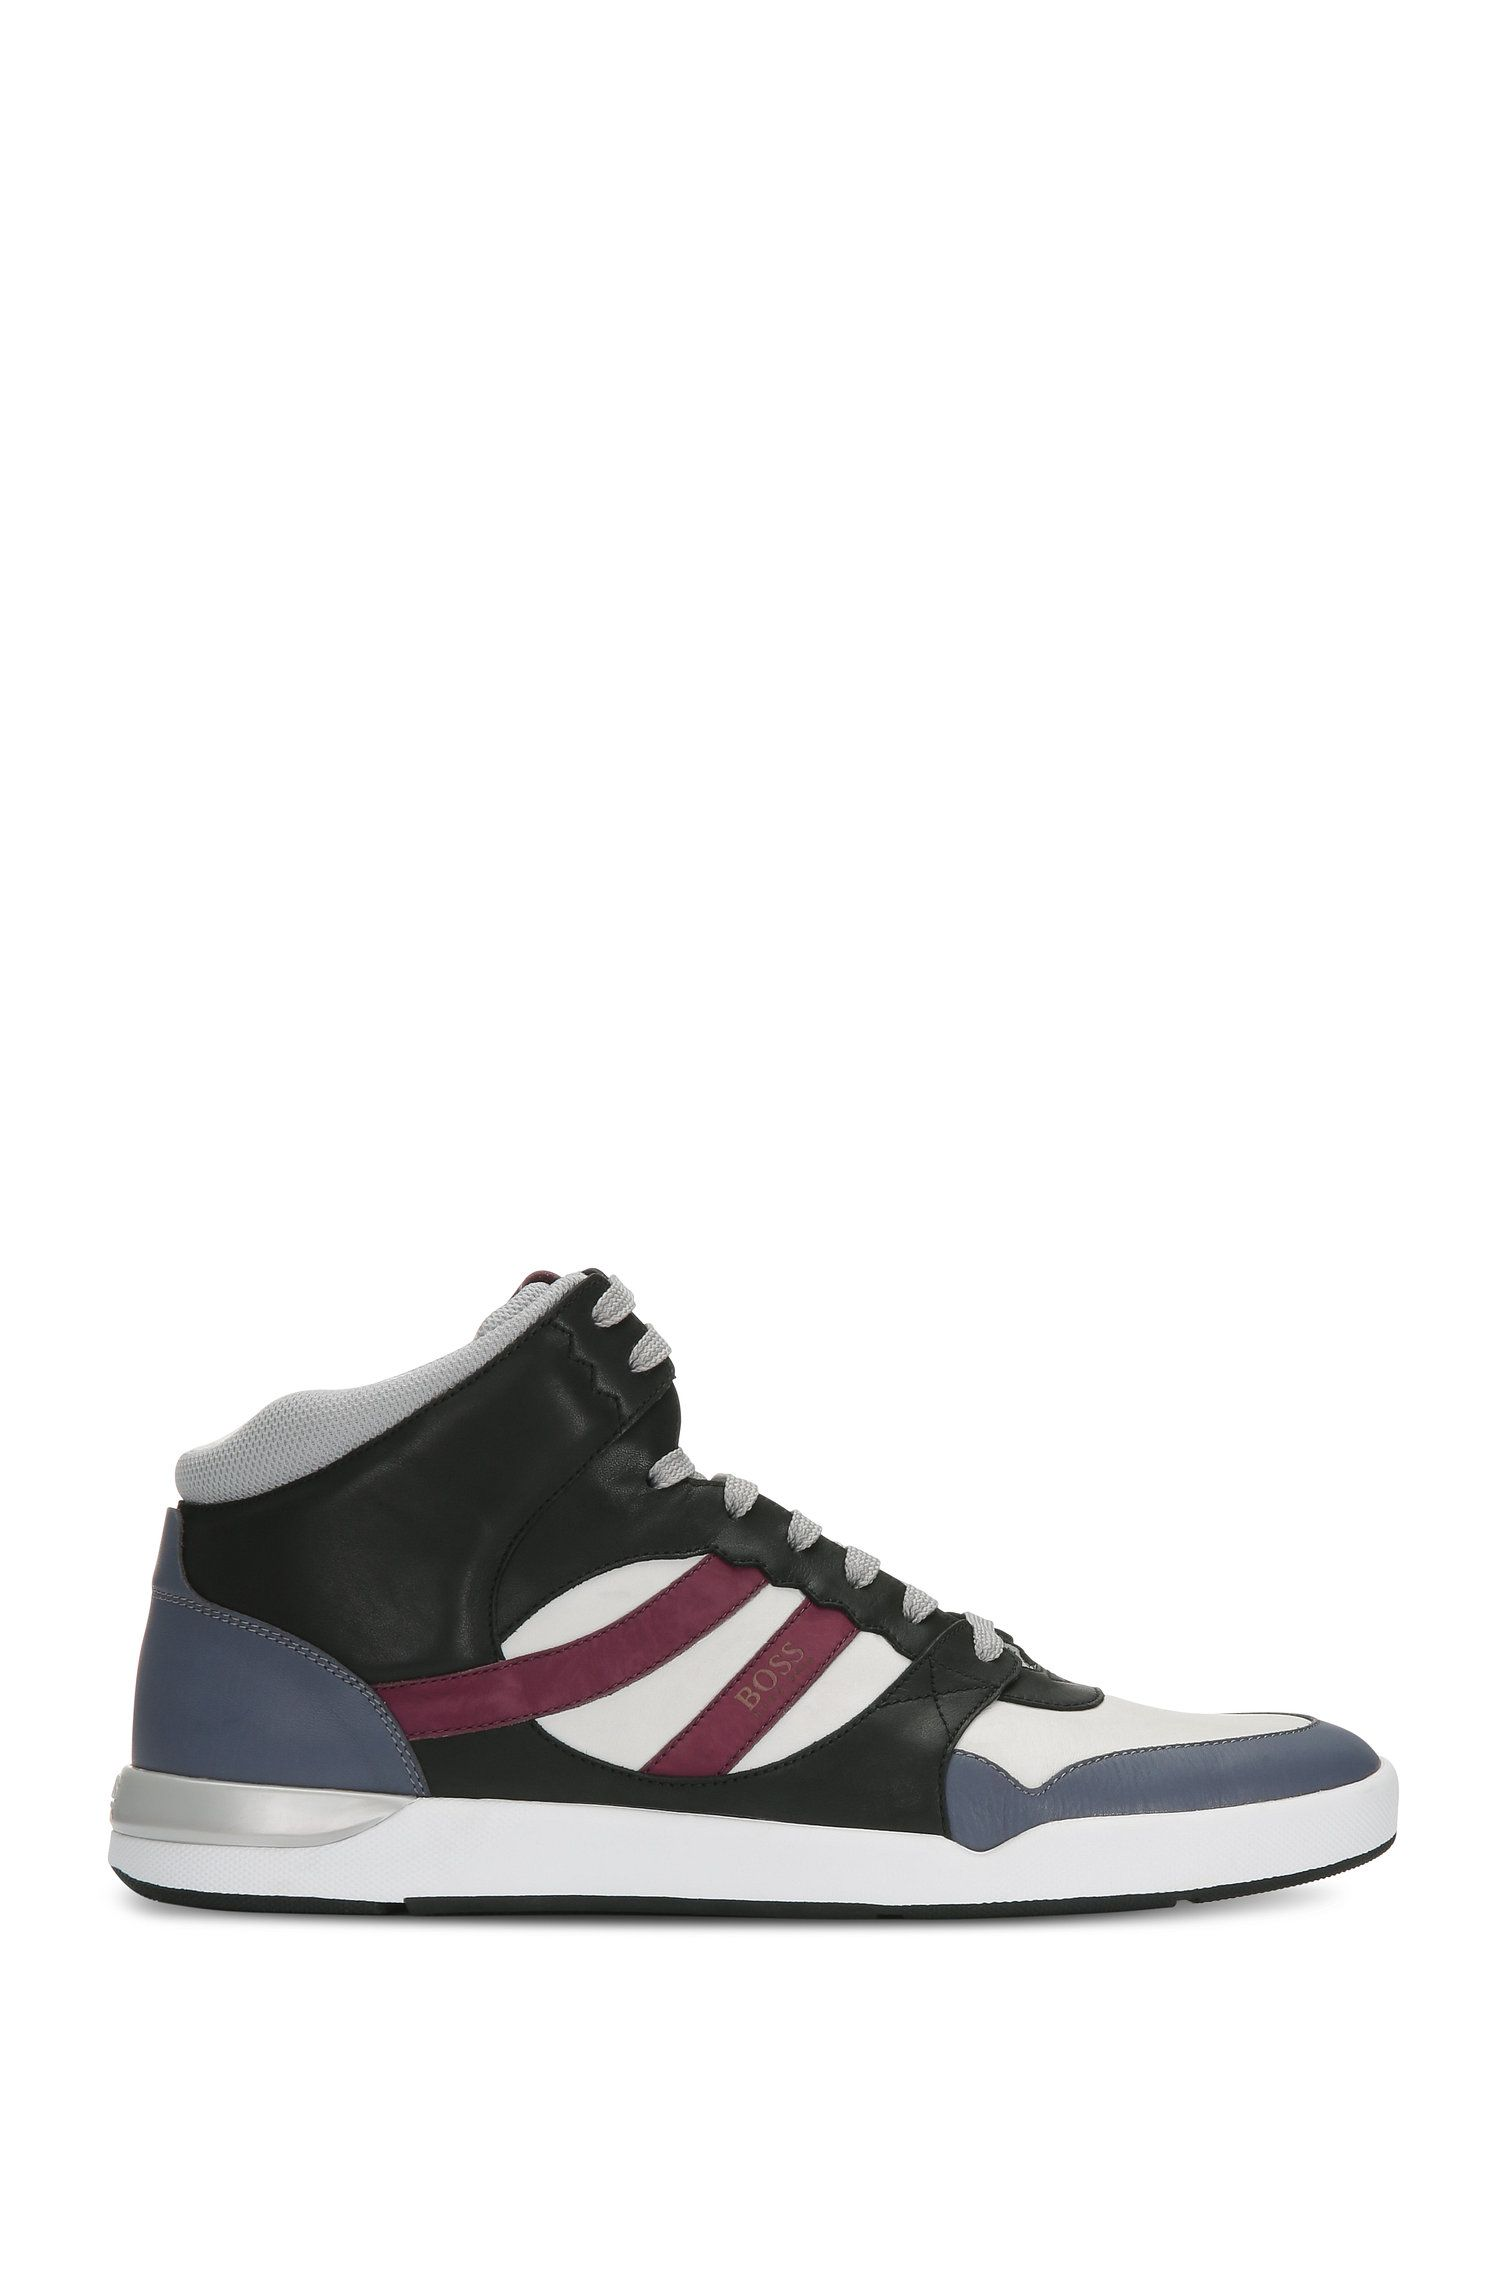 High Top Sneakers aus Leder und Textil: ´Stillnes_Hito_ltws`